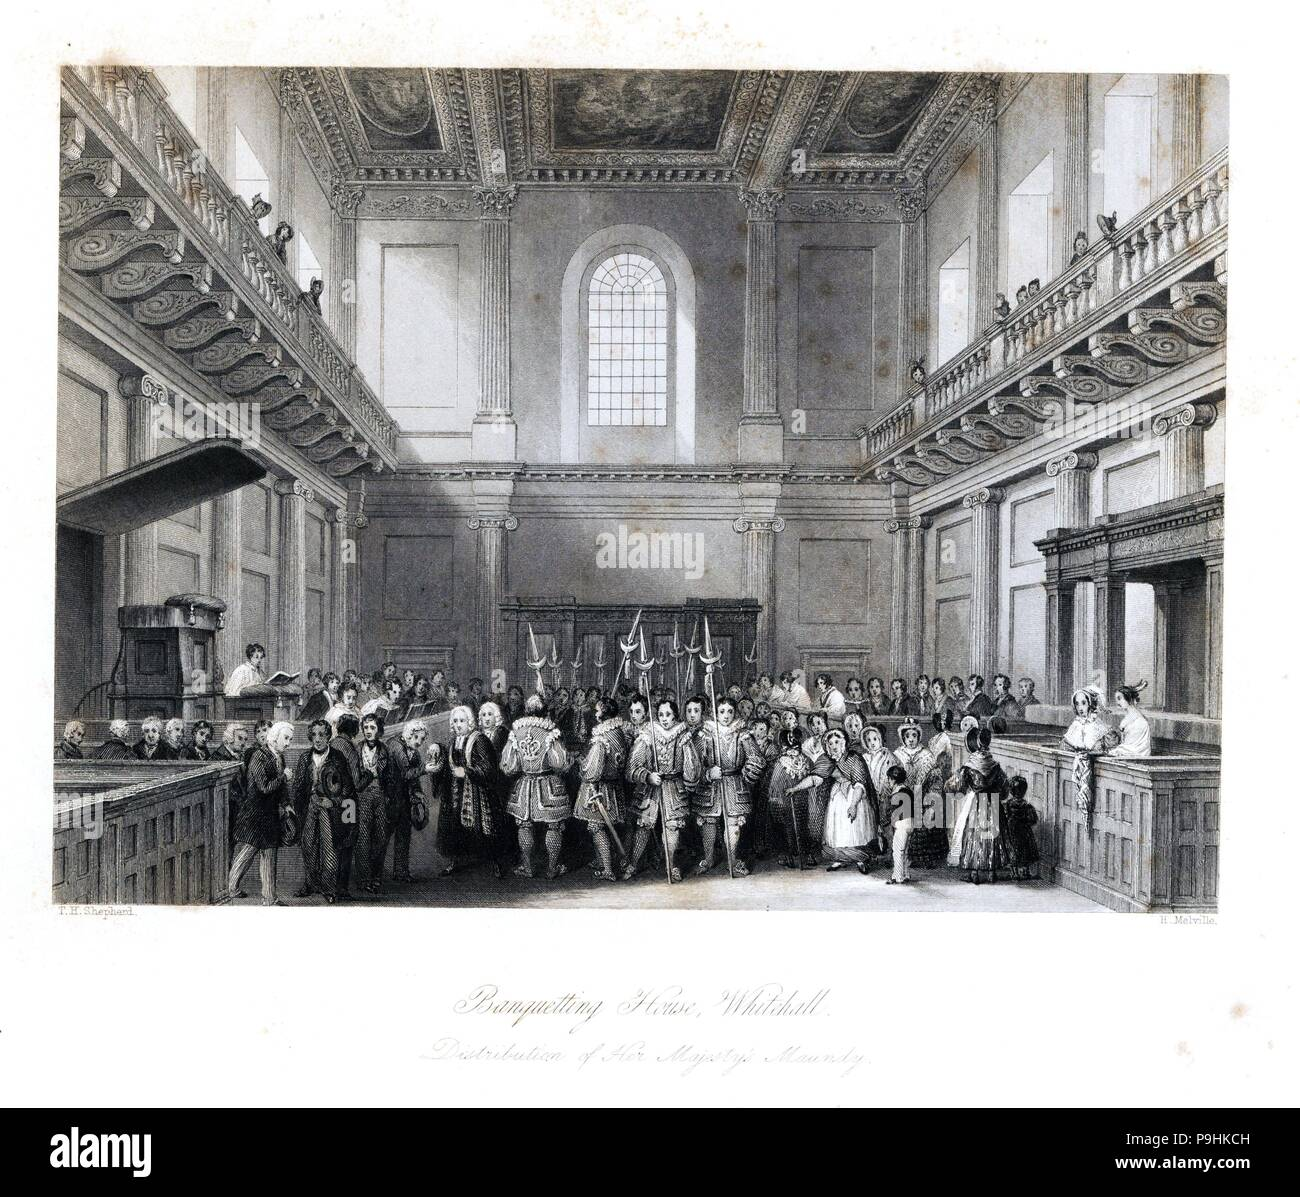 Distribution of Her Majesty's Maundy in the Banquetting House, Whitehall. Annual alms-giving ceremony by Beefeaters in Lent. Steel engraving by Henry Melville after an illustration by Thomas Hosmer Shepherd from London Interiors, Their Costumes and Ceremonies, Joshua Mead, London, 1841. - Stock Image